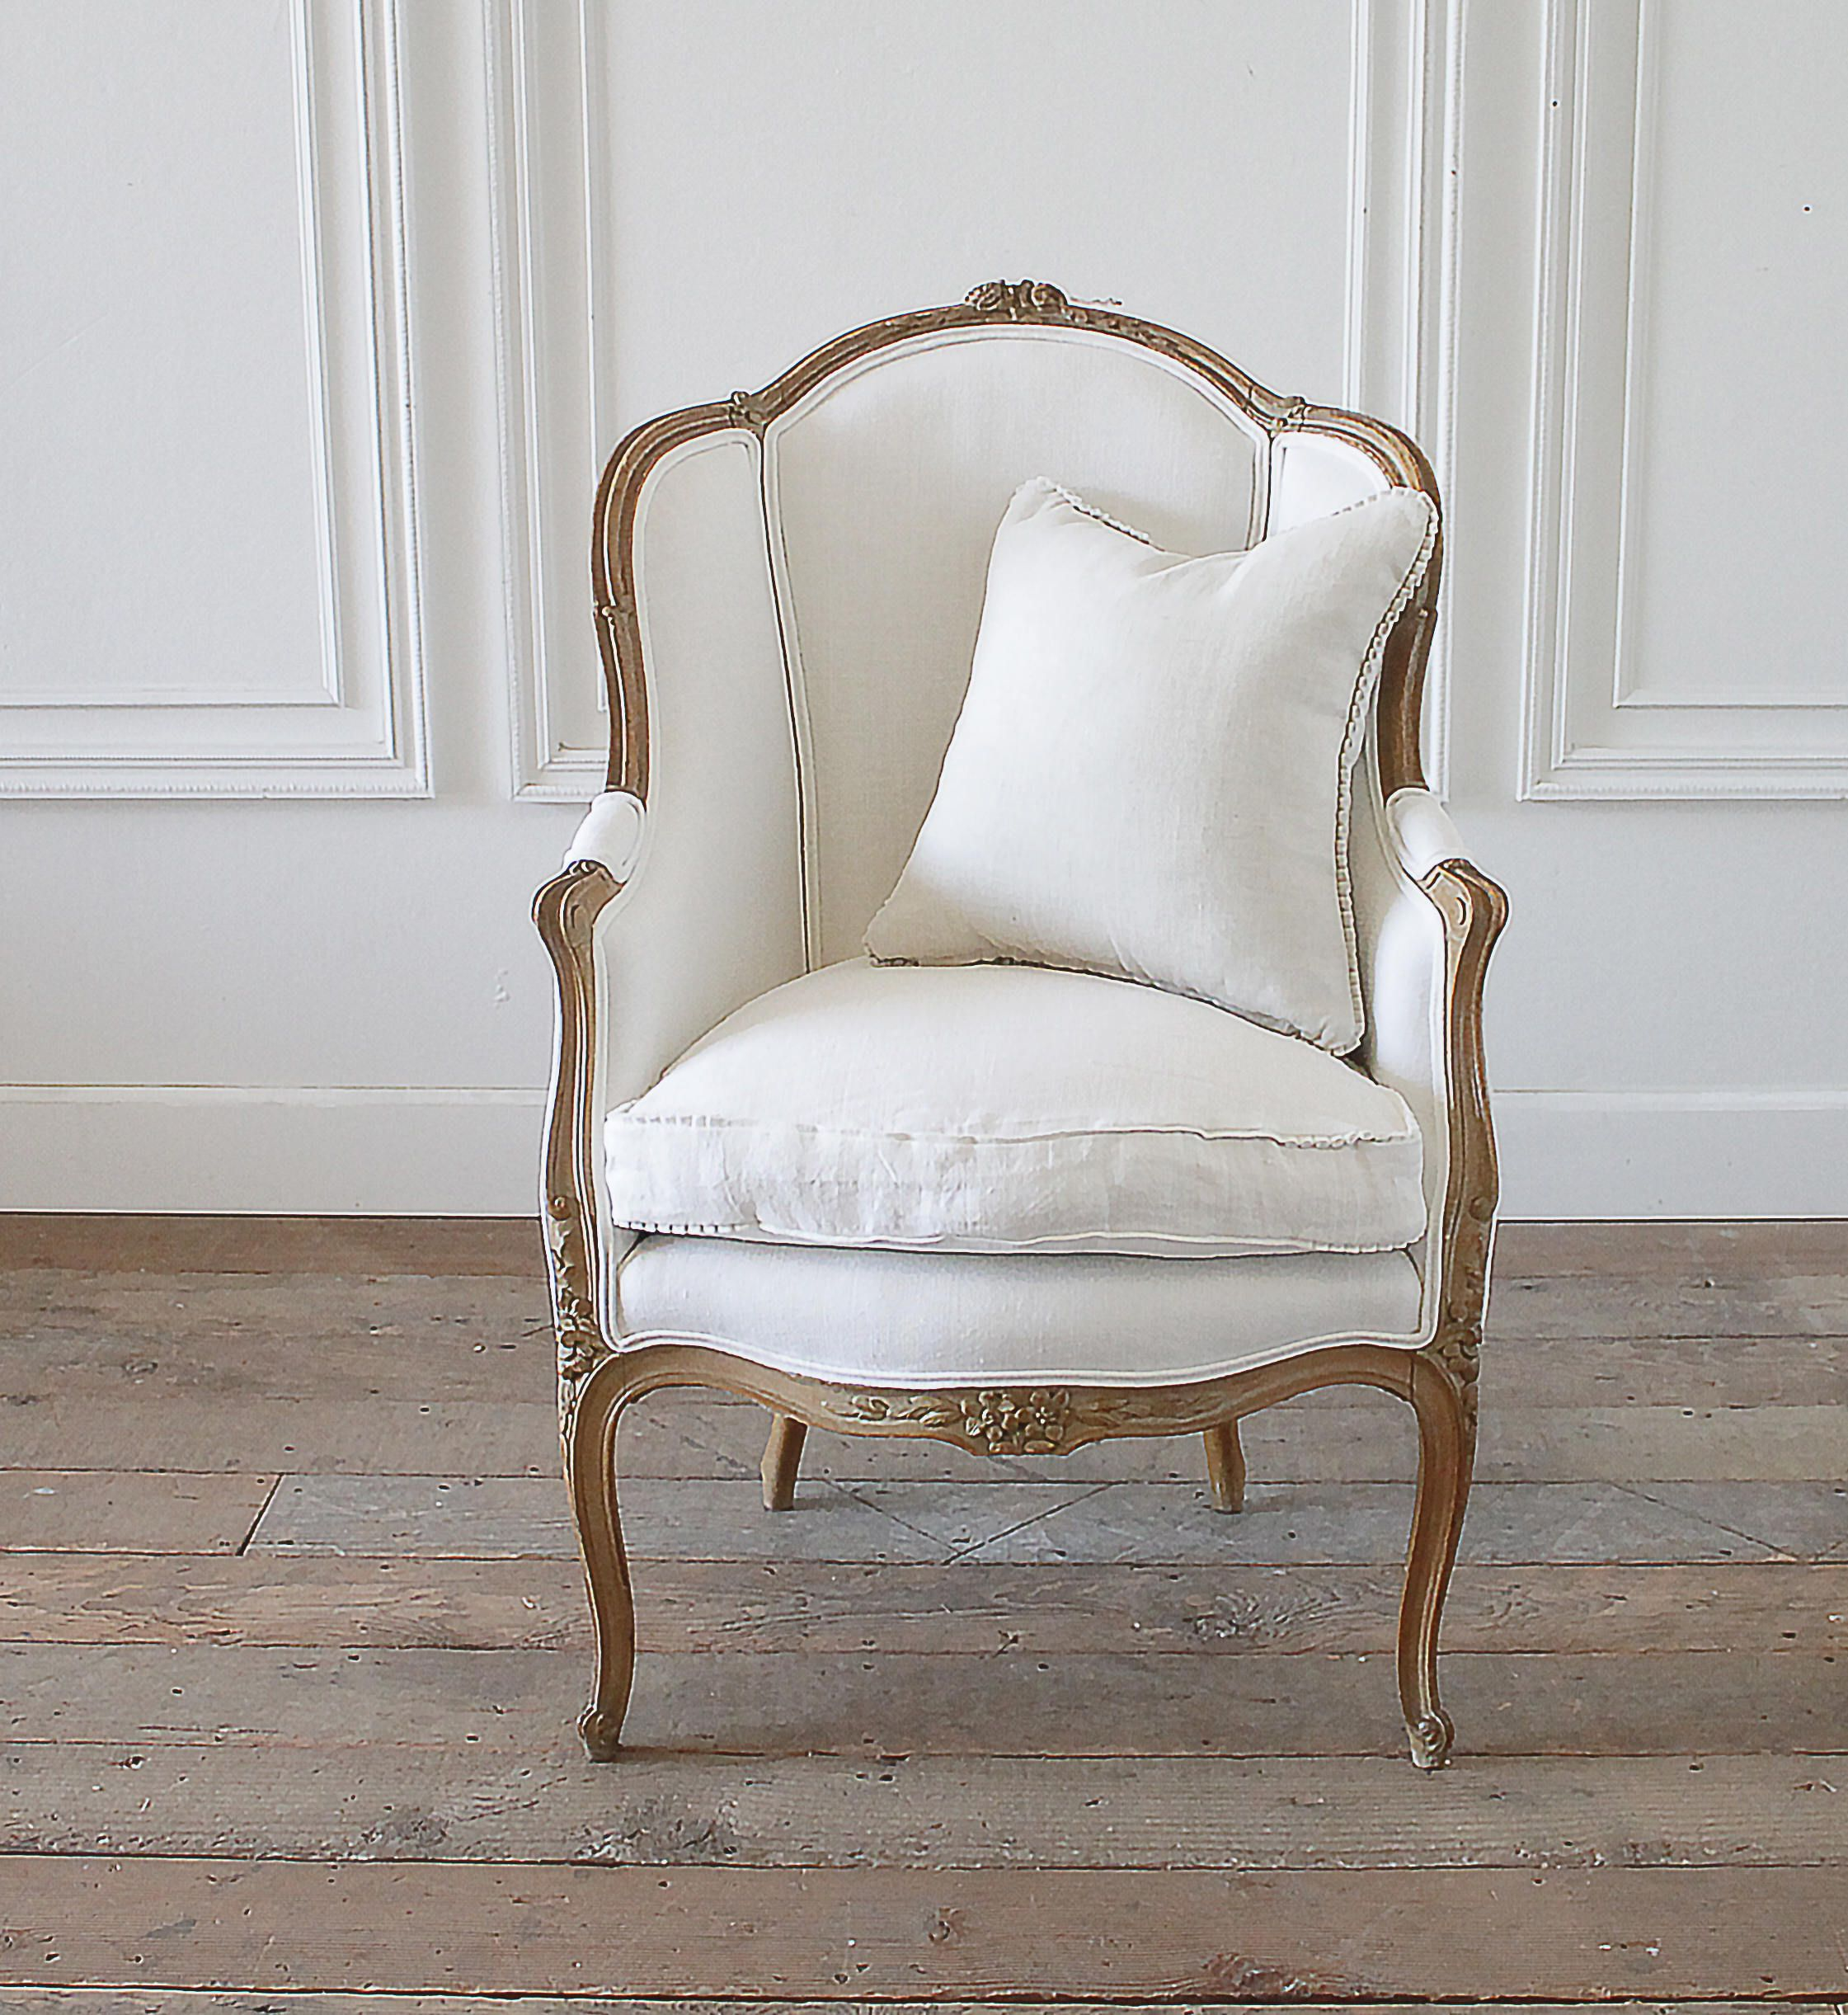 Antique french louis xv style wingback chair in white